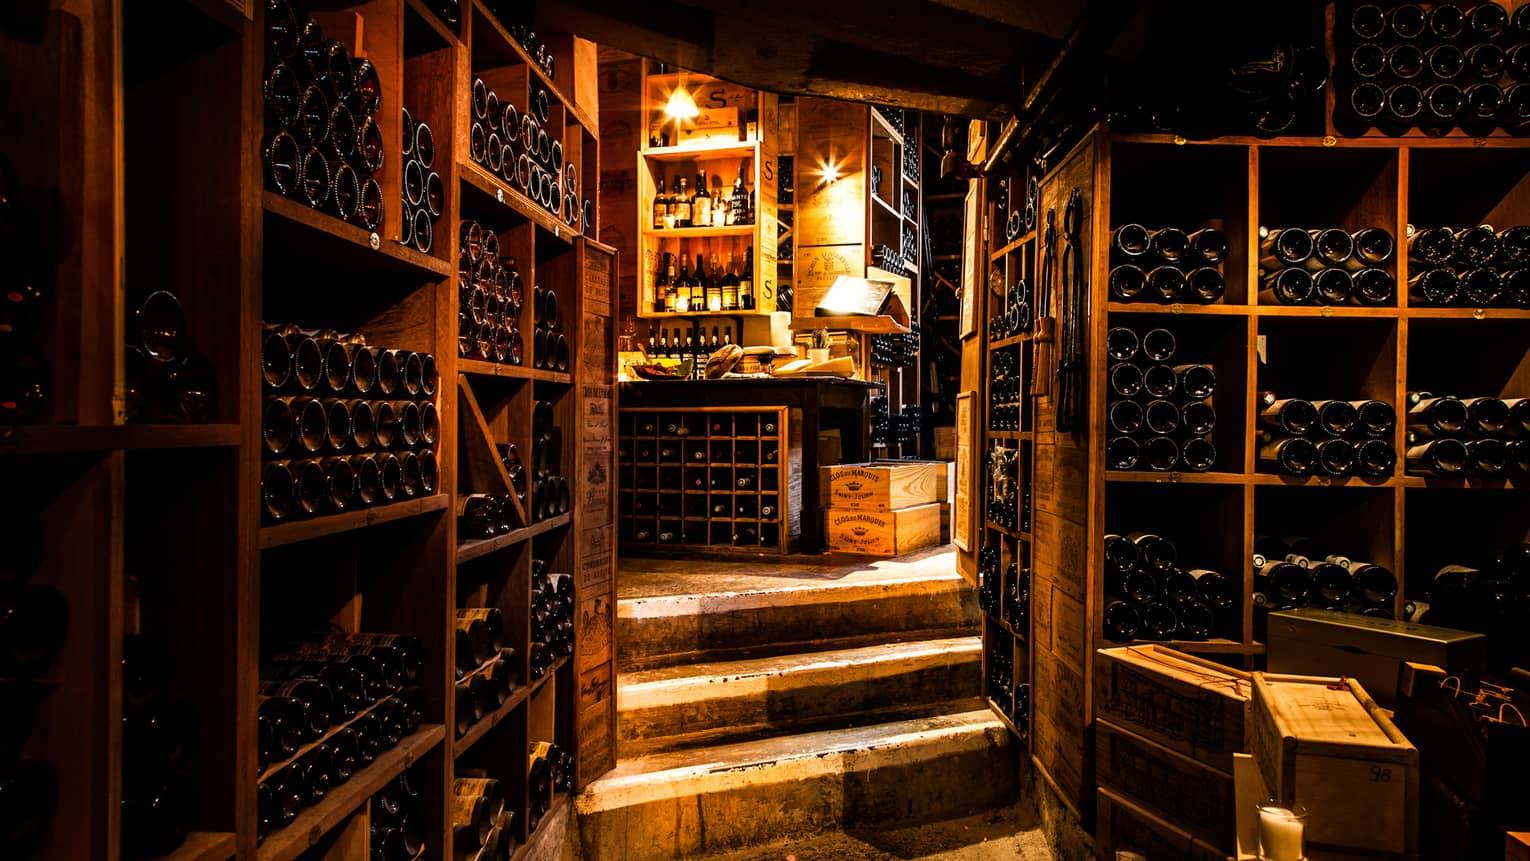 Vintage French wines line walls in dark wood cellar